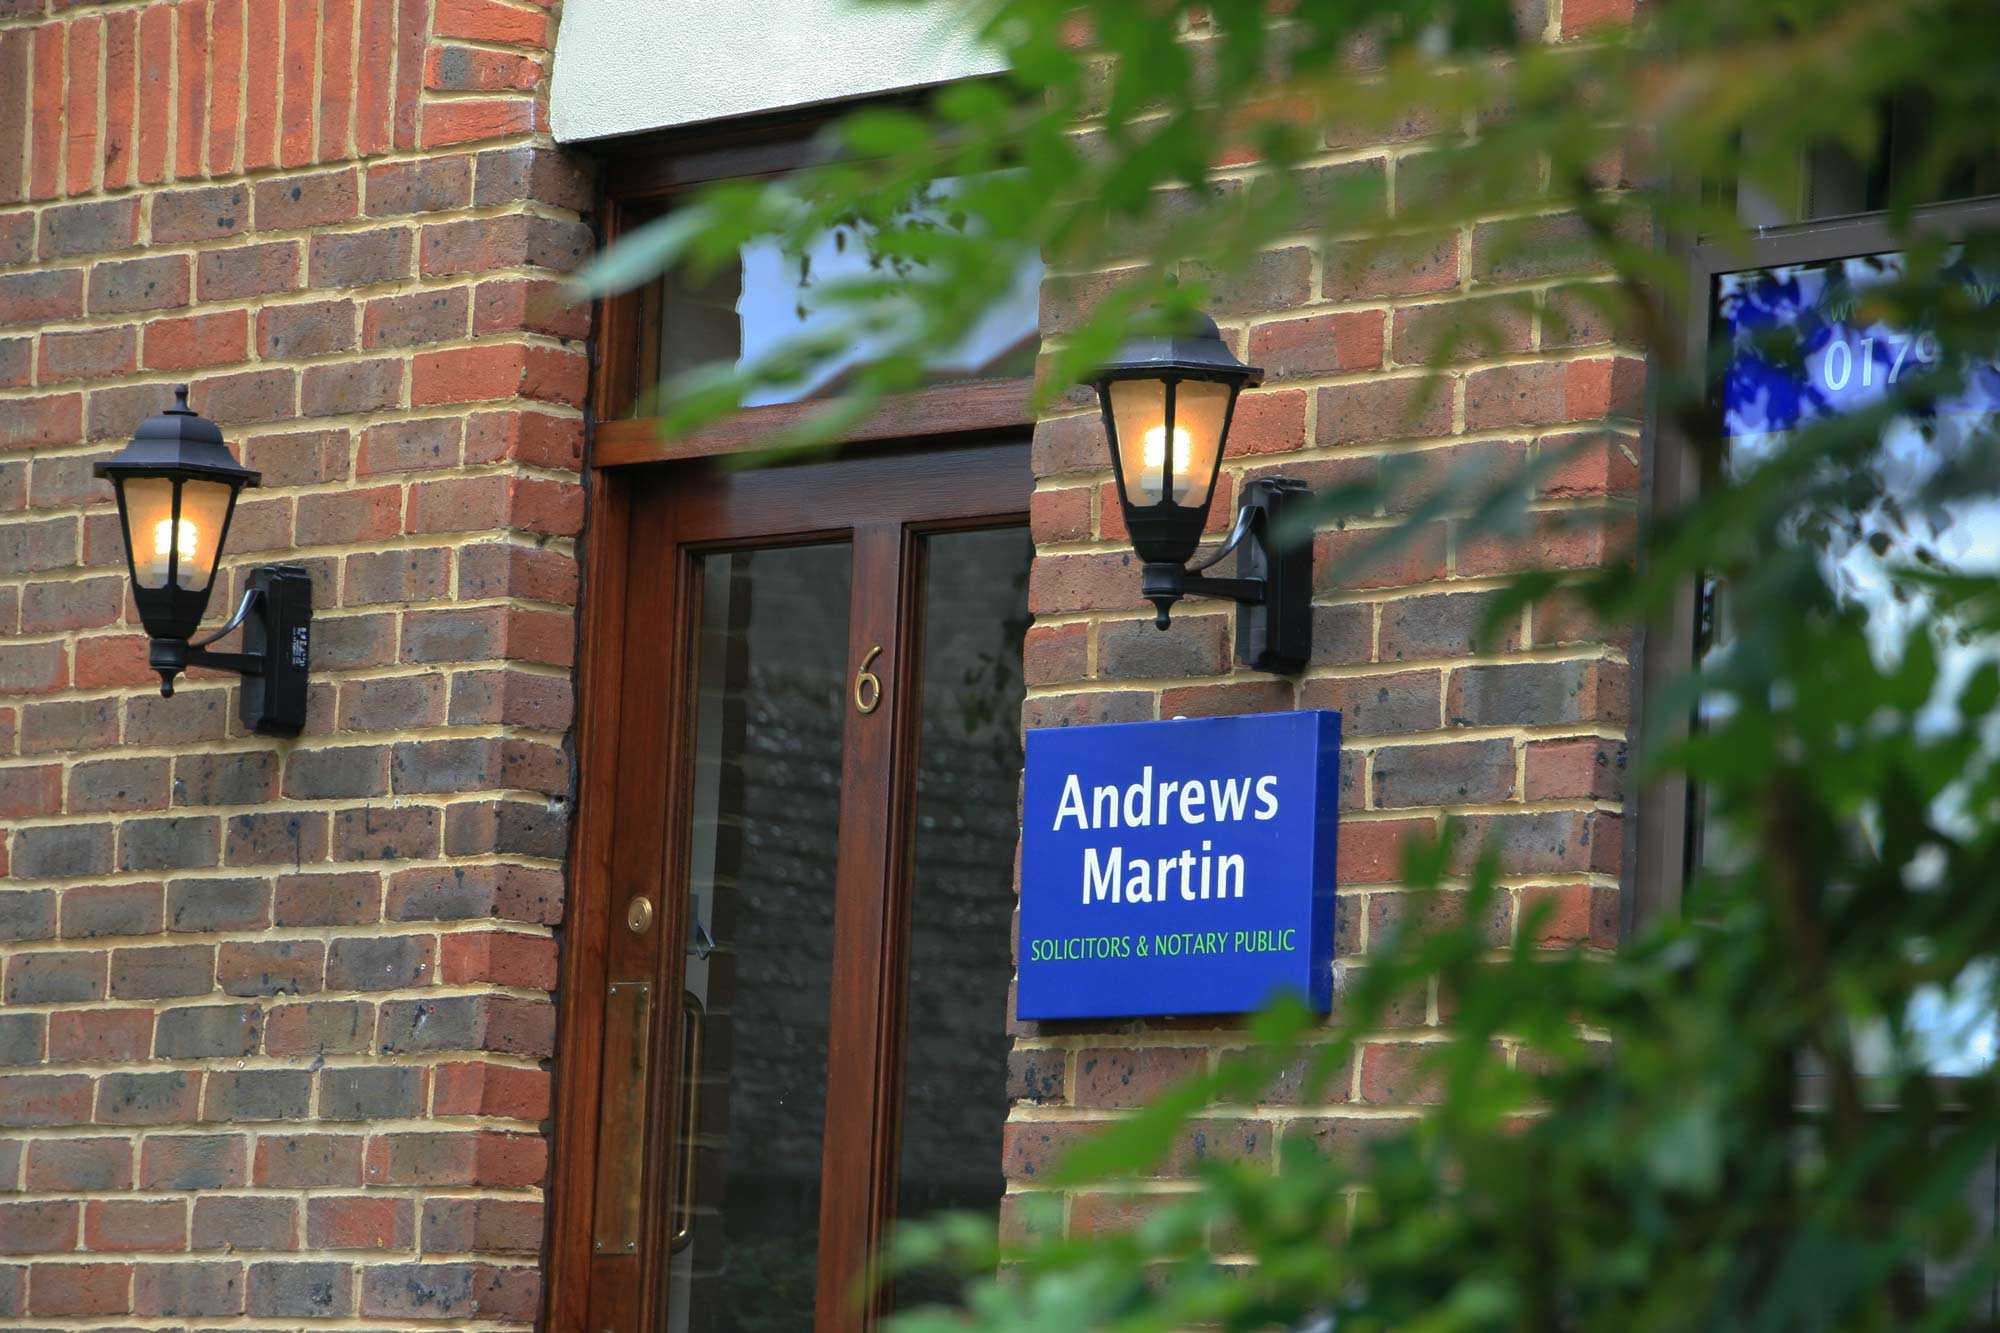 Andrews Martin Solicitors, Old Town, Swindon